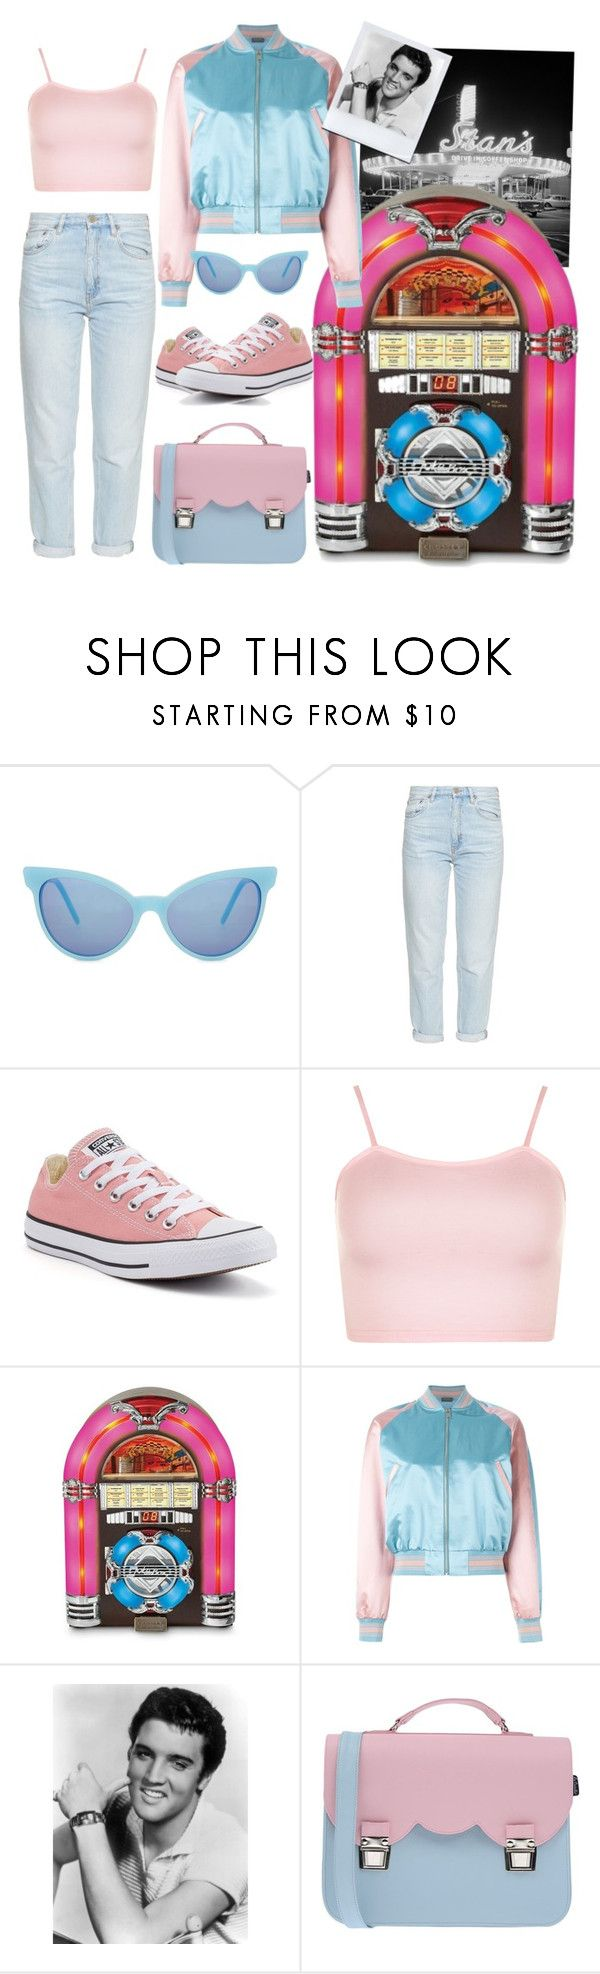 """Play that funky music"" by xmoonagedaydreamx ❤ liked on Polyvore featuring Wildfox, M.i.h Jeans, Converse, WearAll, Crosley Radio & Furniture, Alexander McQueen and La Cartella"